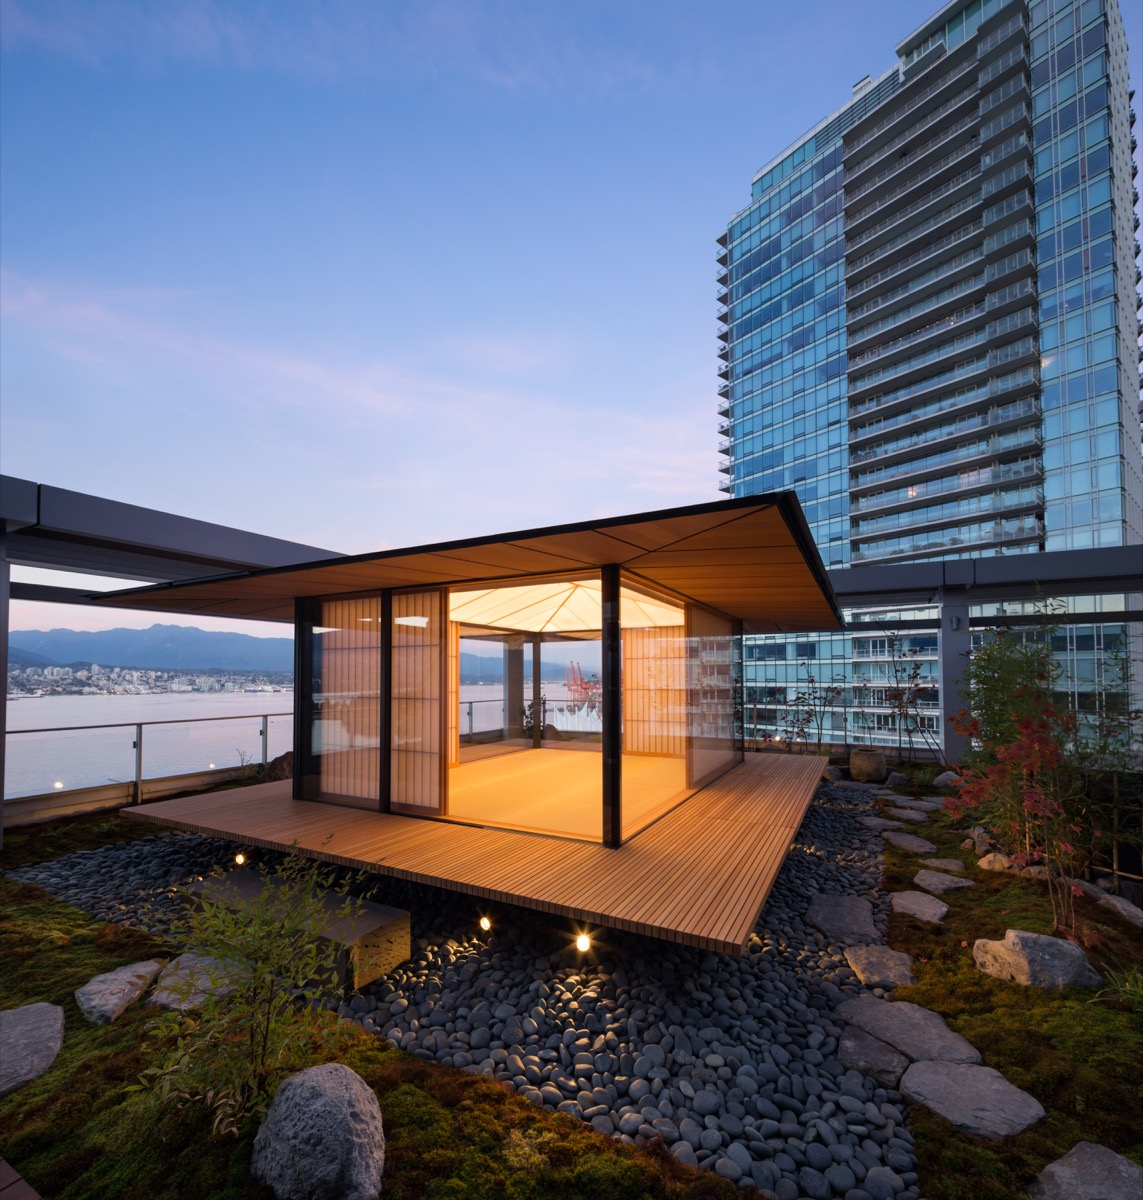 6 Modern Teahouses That Are Architectural